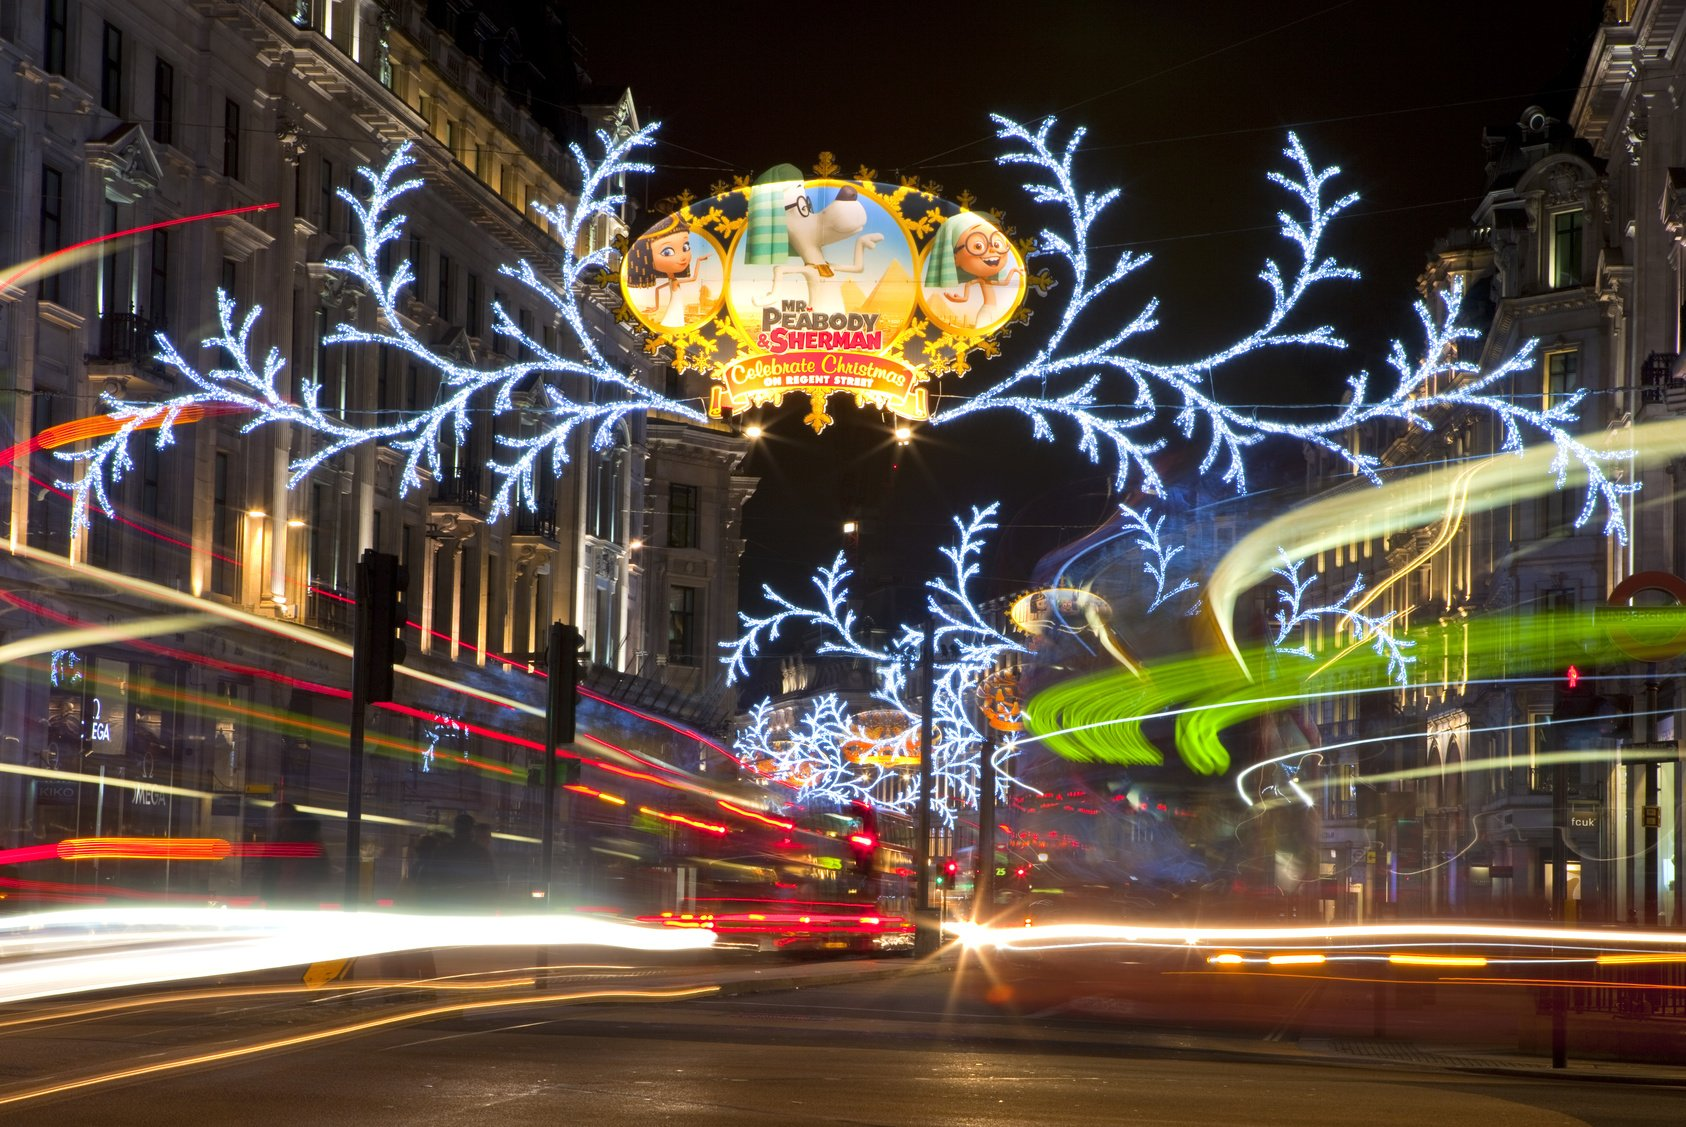 LONDON, UK - DEC 1ST 2013: The Christmas lights on Regent Street in London on 1st December 2013.